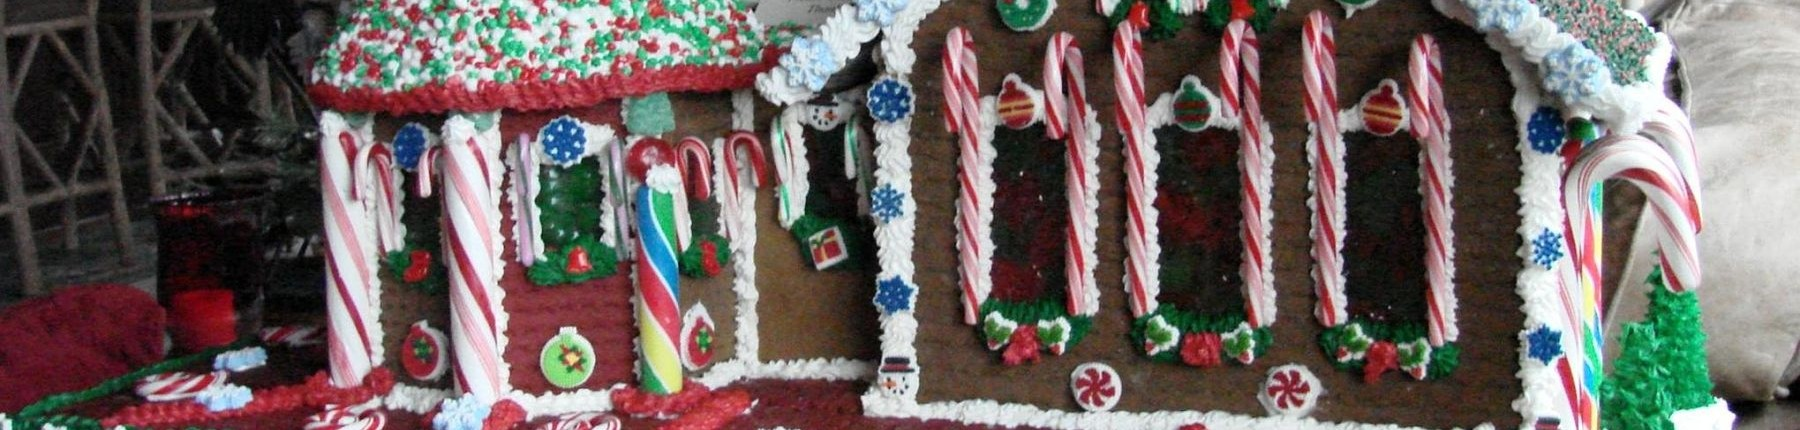 Gingerbread house from Madden's